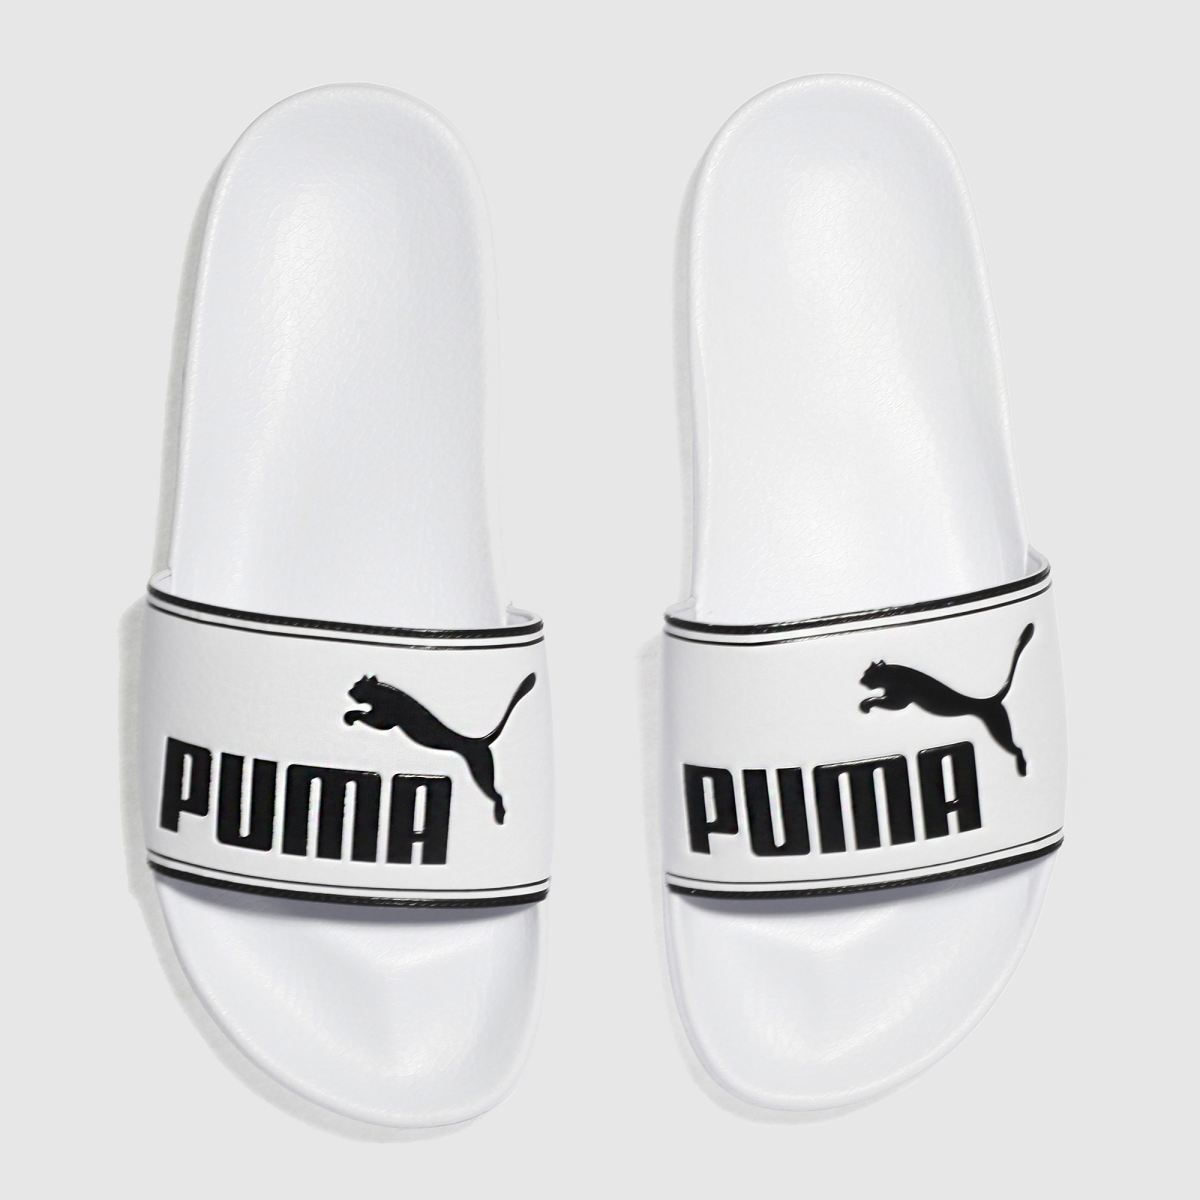 Puma White & Black Leadcat Sandals